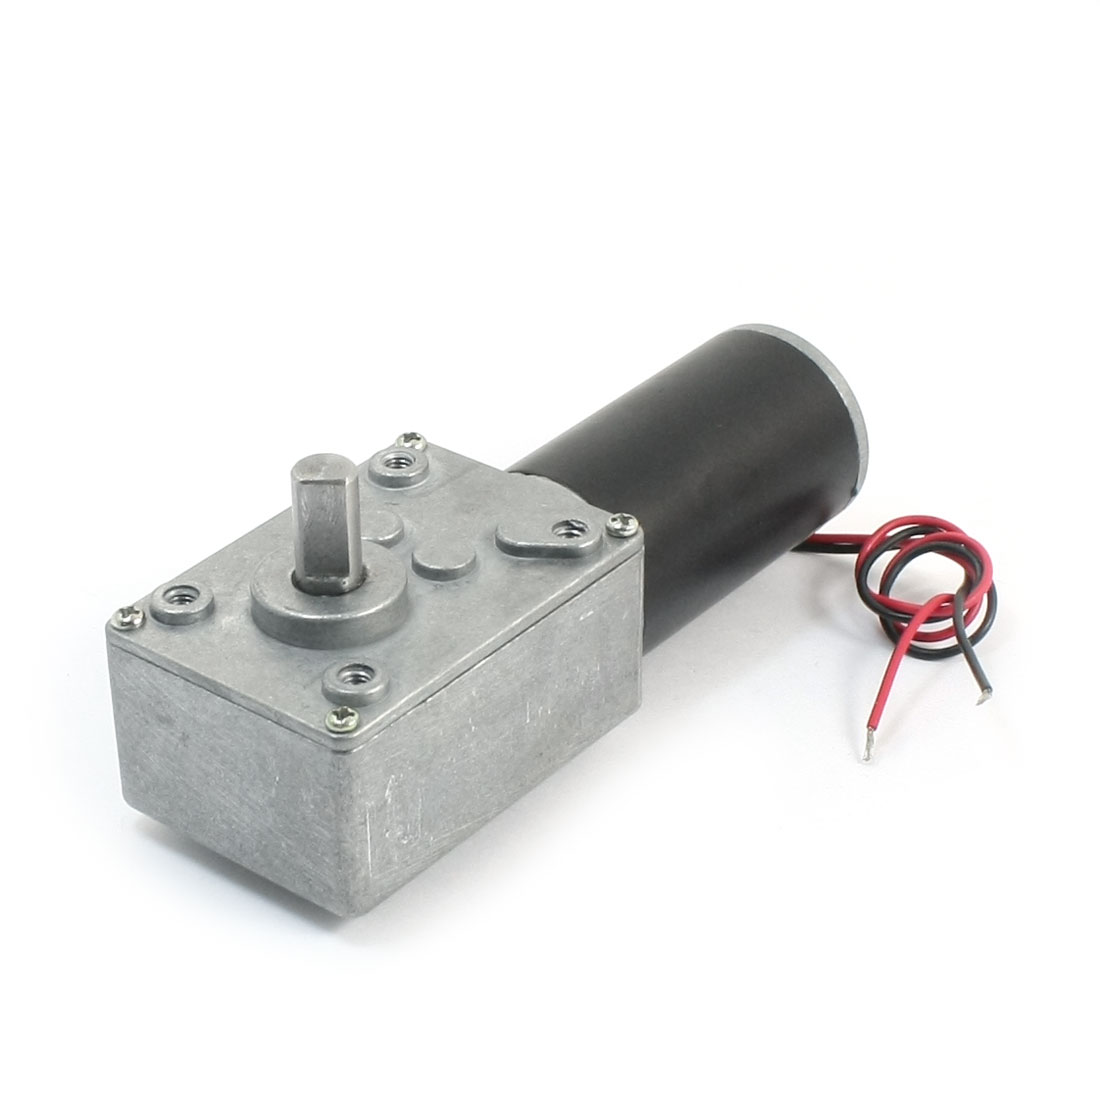 19cm Long Dual Wire Leads 7mm Shaft Reduction Ratio 8000/240RPM Rotary Speed Reduce High Torque Worm Geared Box Motor DC24V